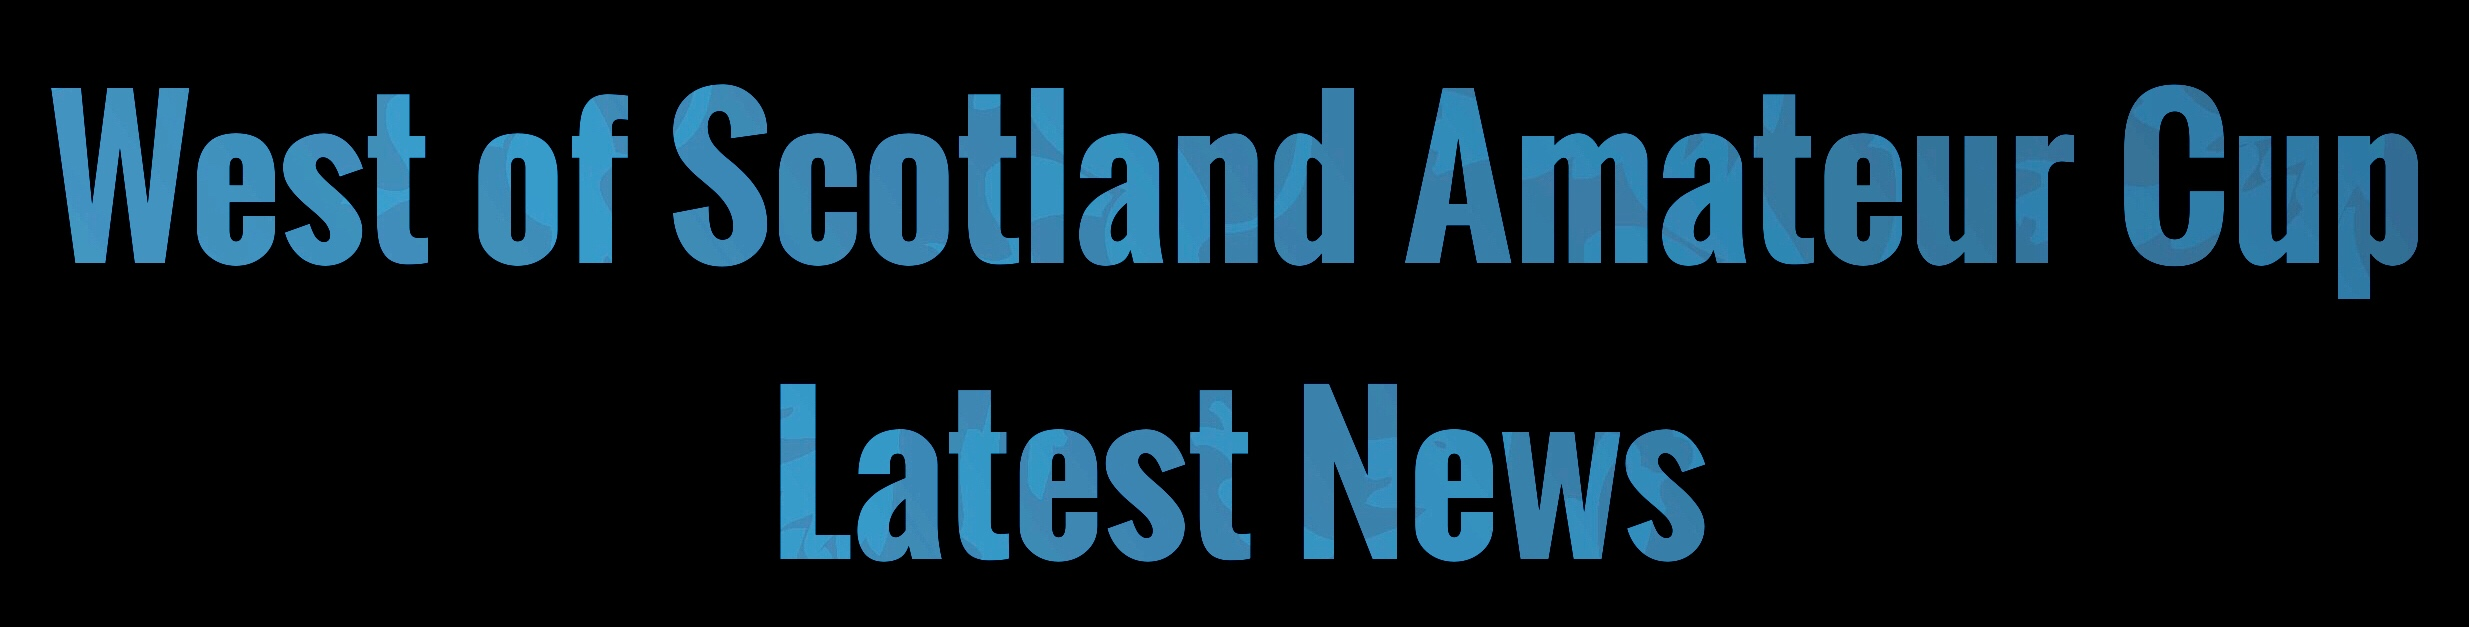 West of Scotland Amateur Cup Latest